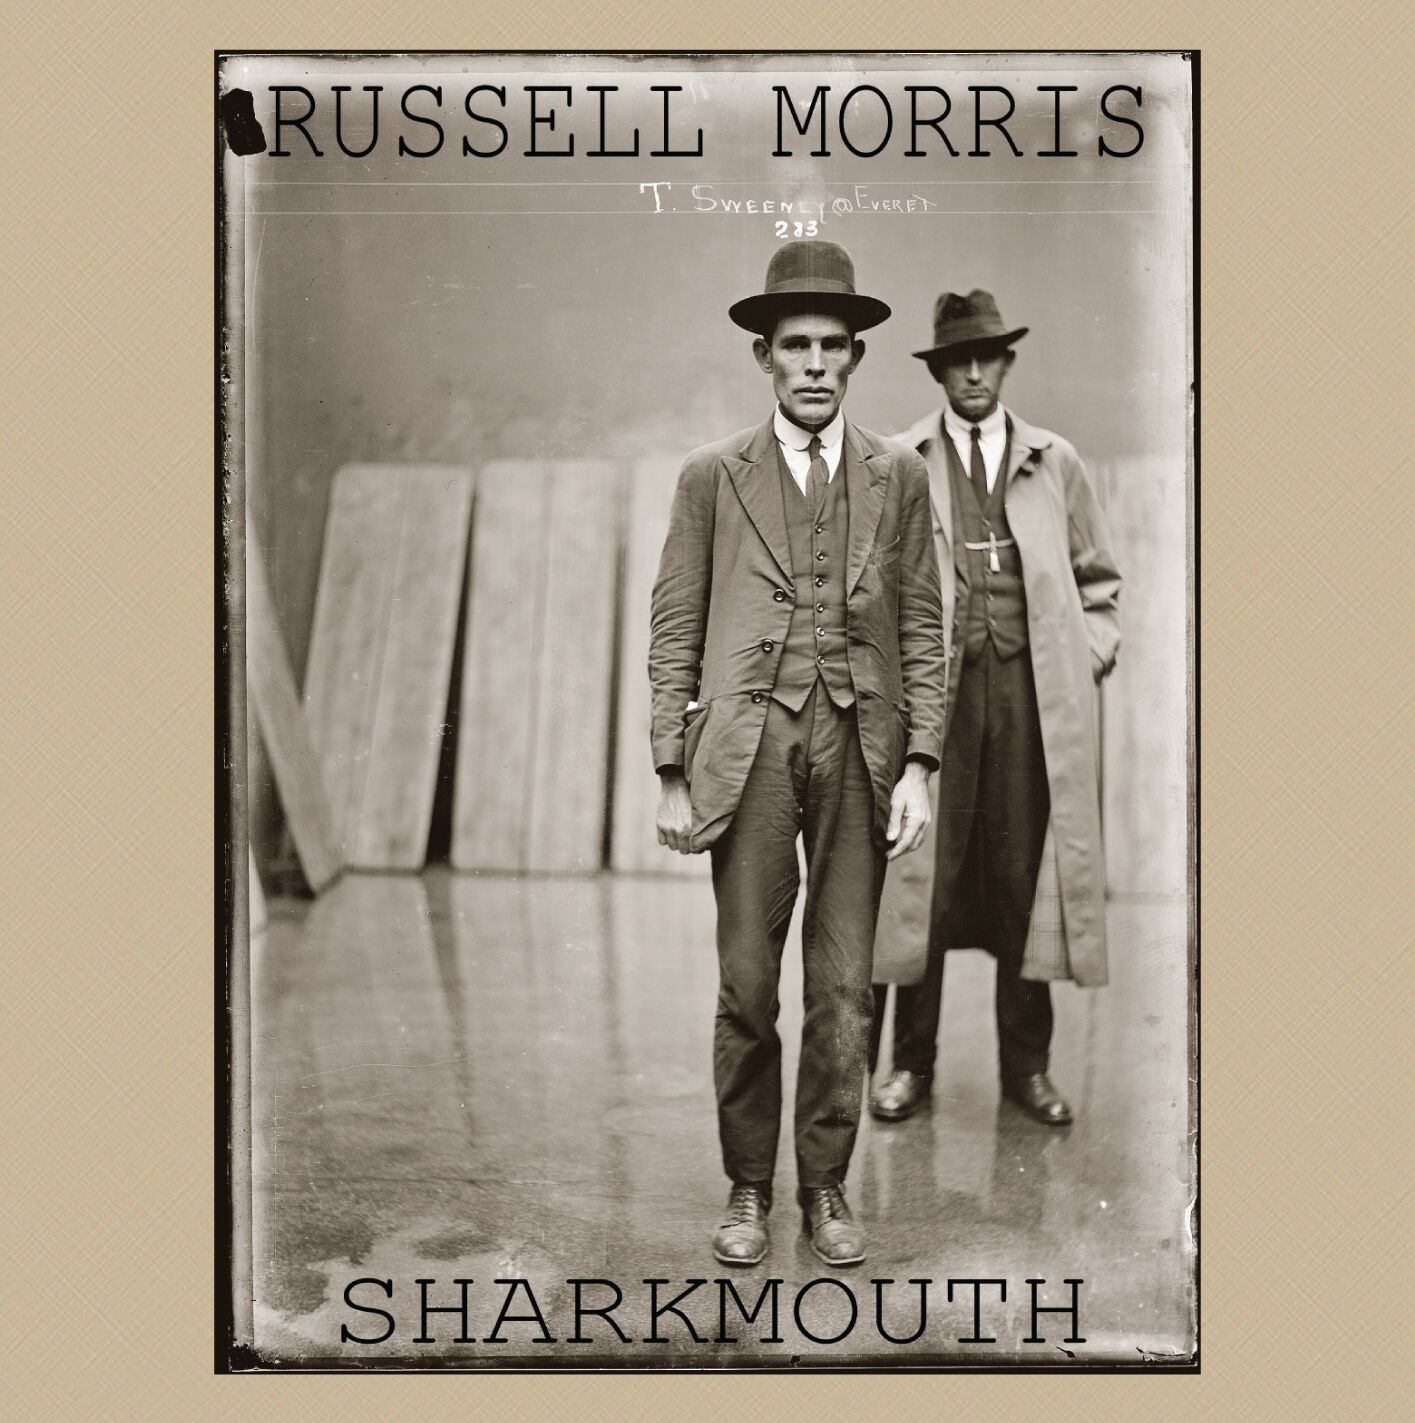 Russell Morris' Sharkmouth Streets 9/30/16